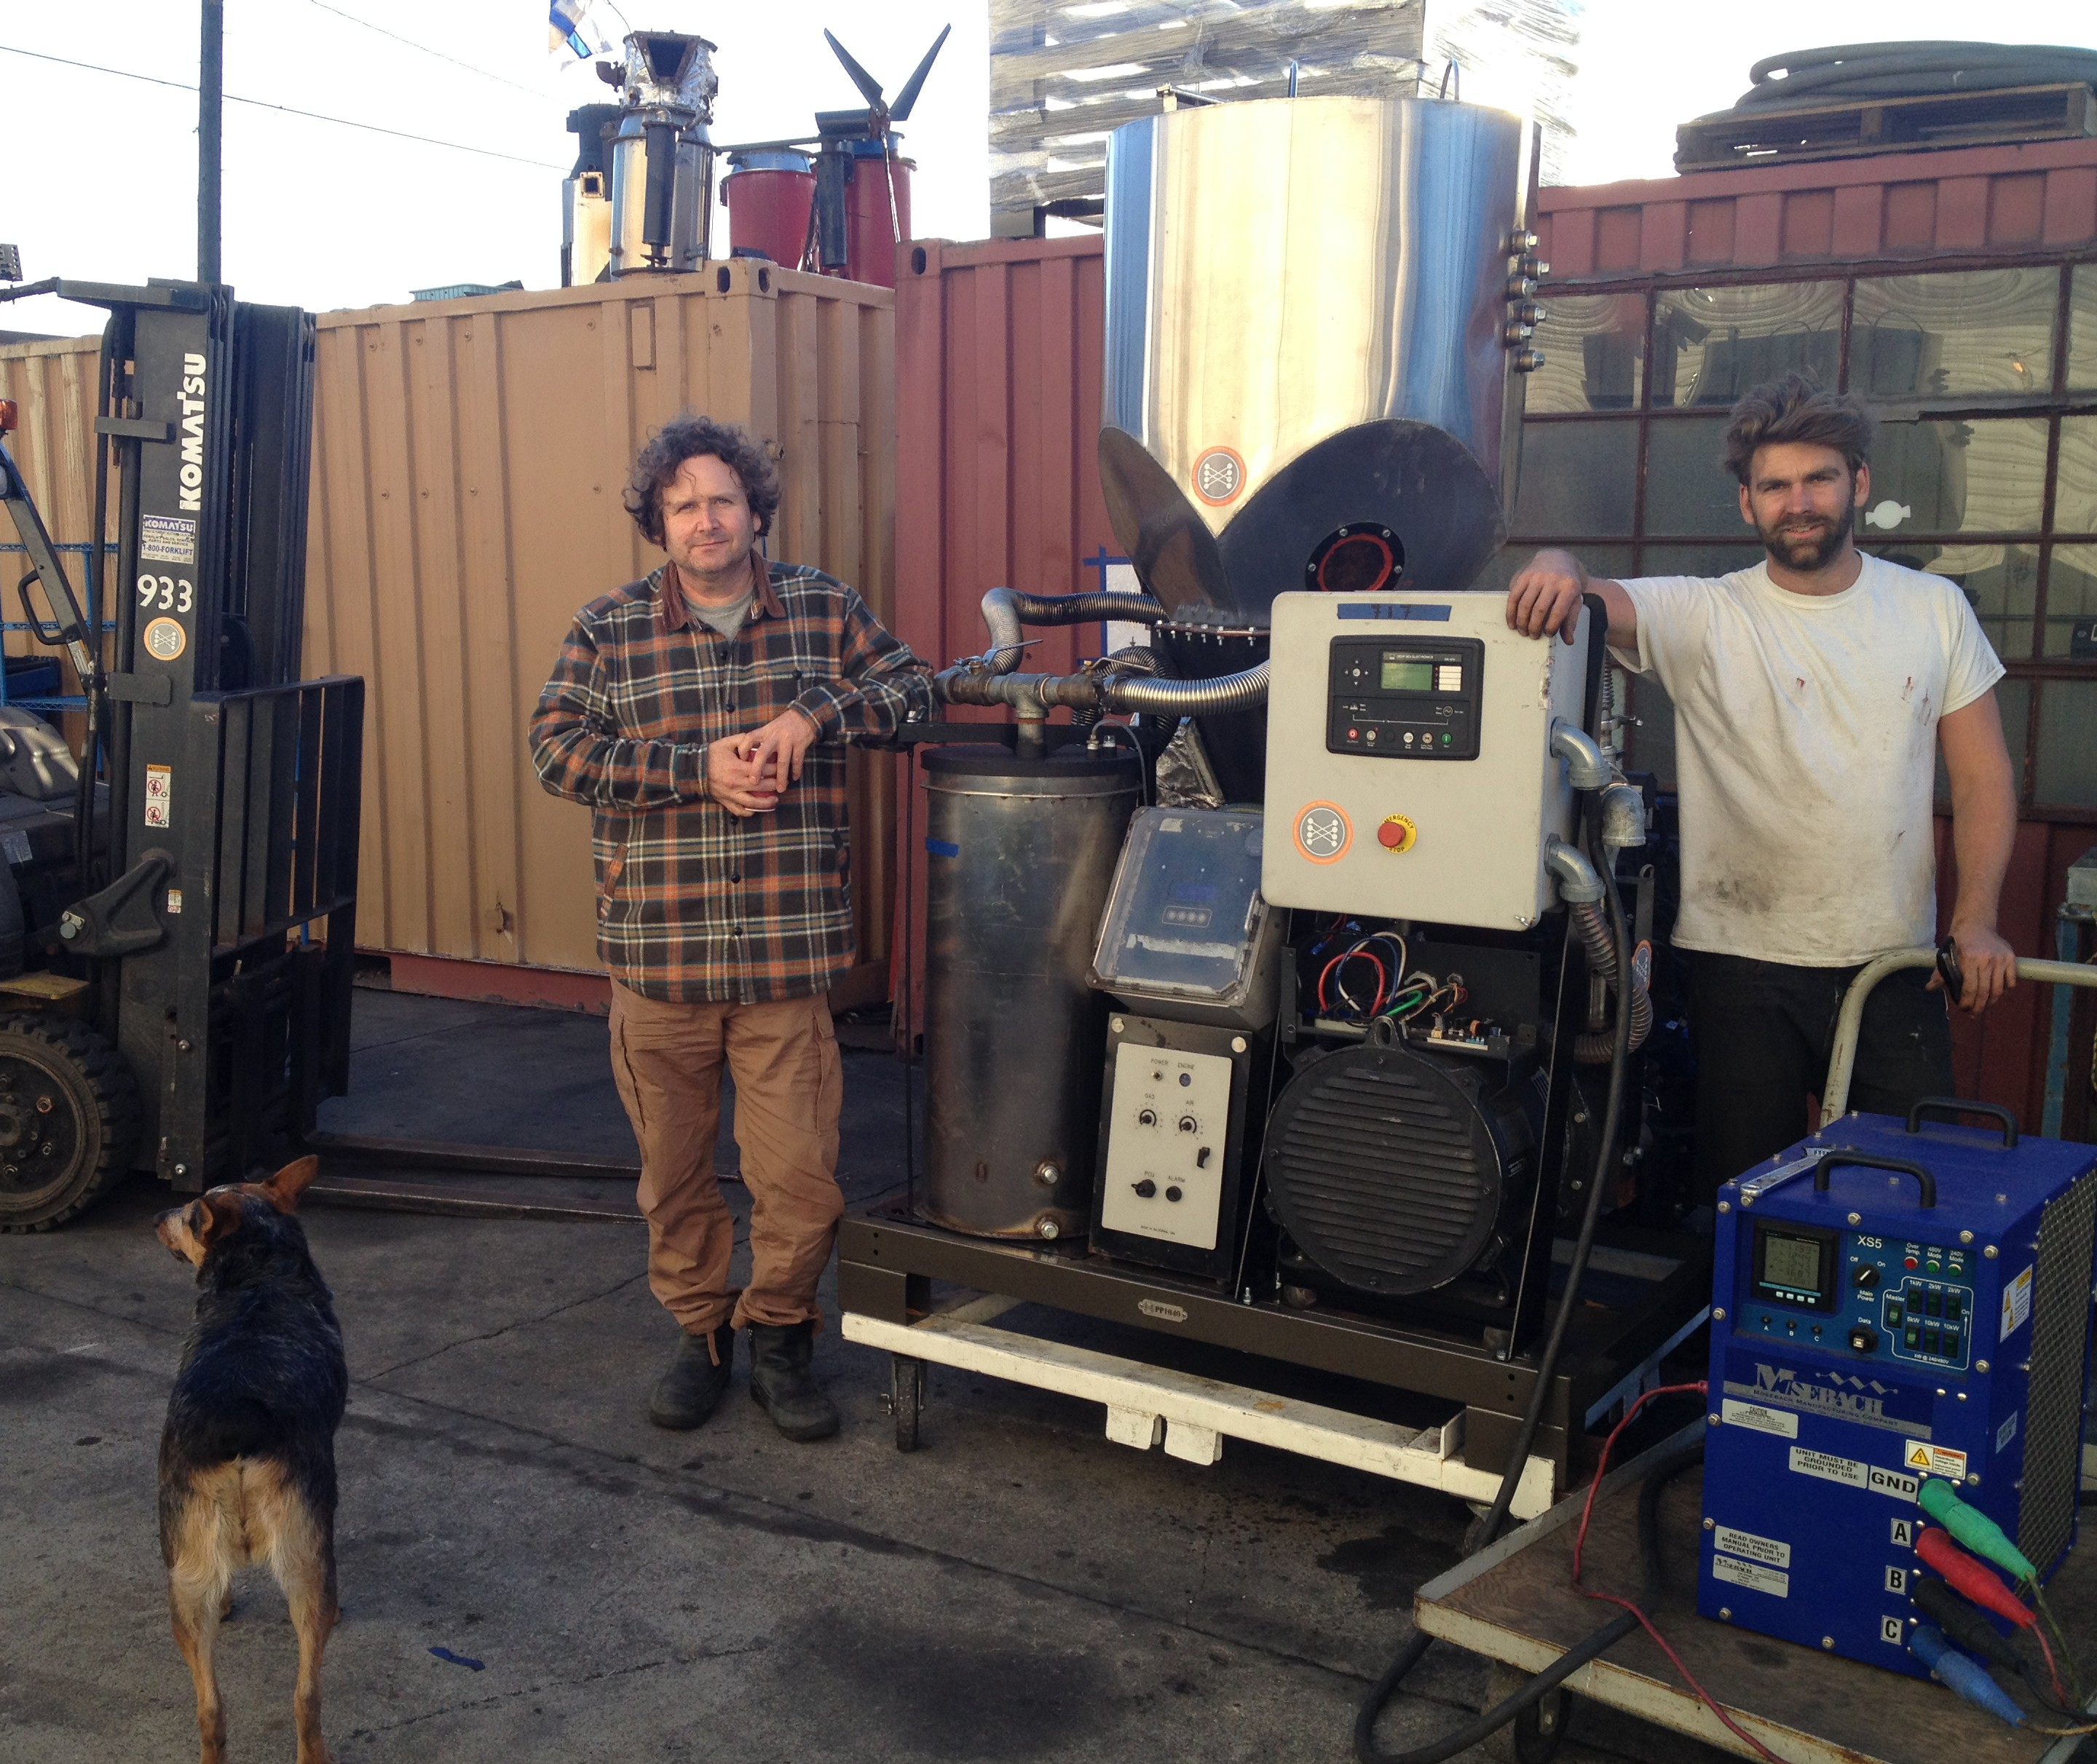 Co-founder and CEO Jim Mason, and Director of Infrastructure, Nick Bindbeutel, [L,R] stand in front of the Power Pallet, in the headquarters of All Power Labs, Berkeley, Calif. Dog and mascot Dulie in the foreground.